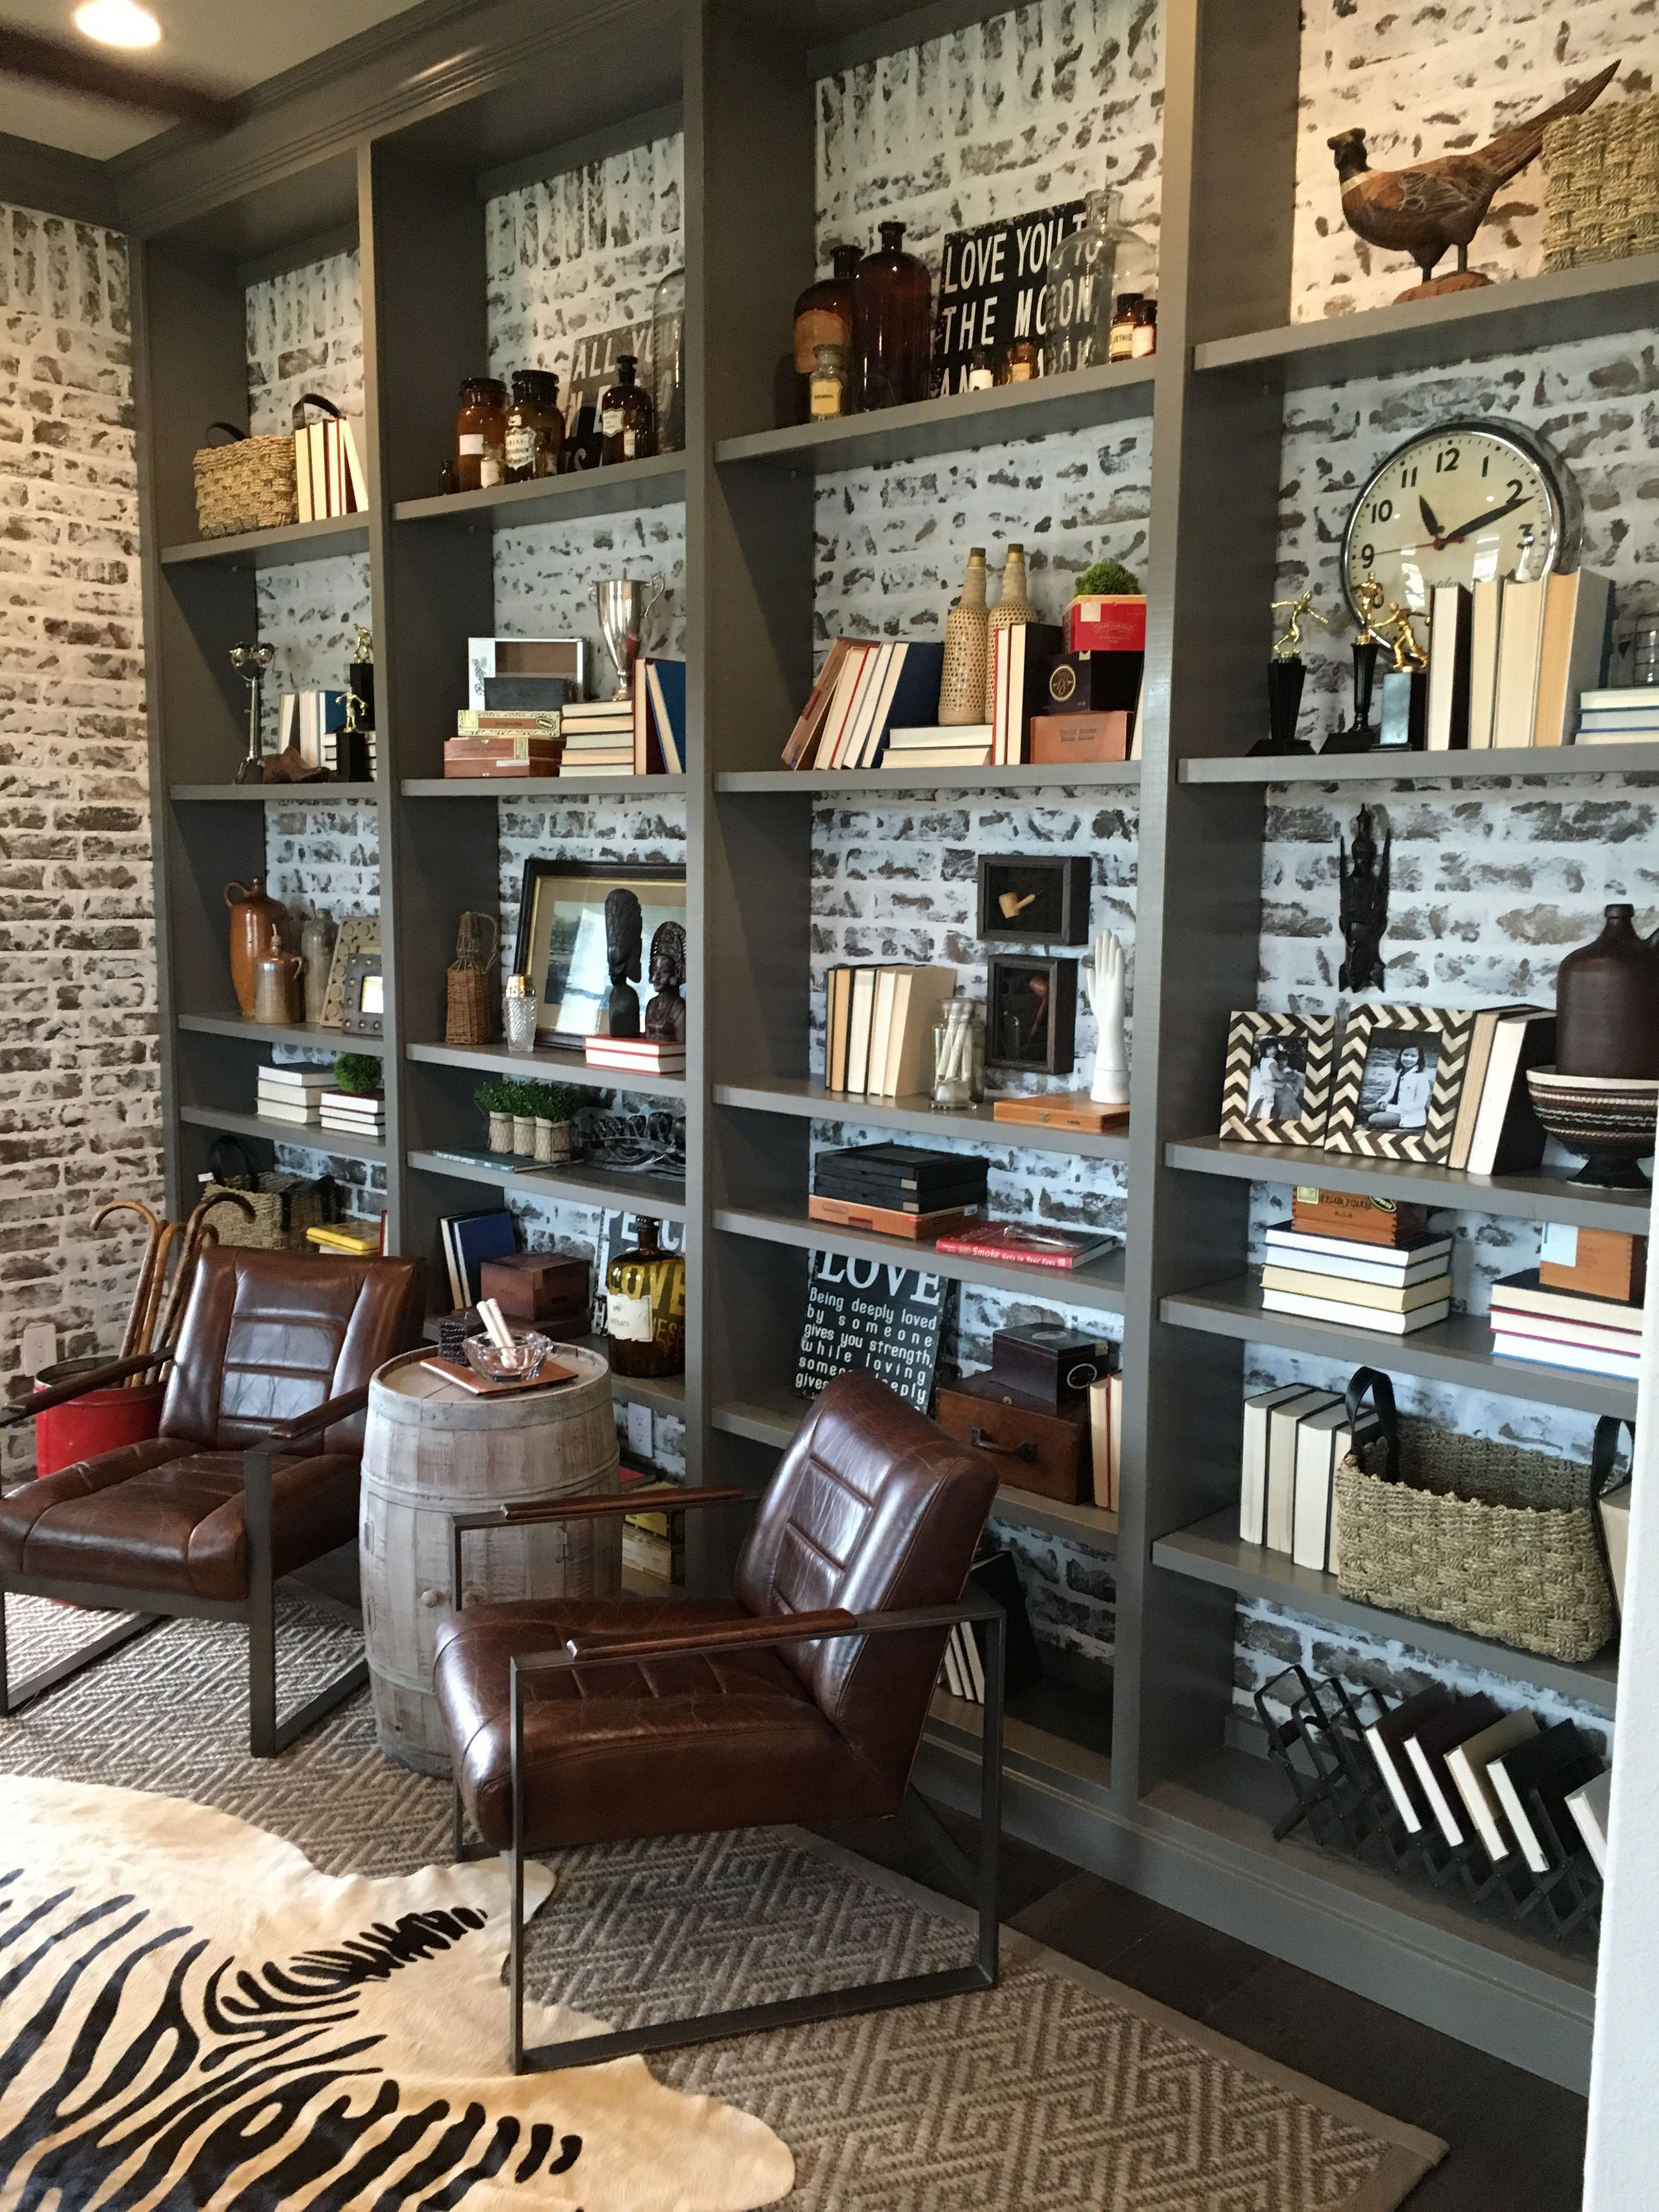 Check out this article and get 10 amazing game room ideas and more. Pin by Dennis Alexander on gameroom ideas | Home decor ...